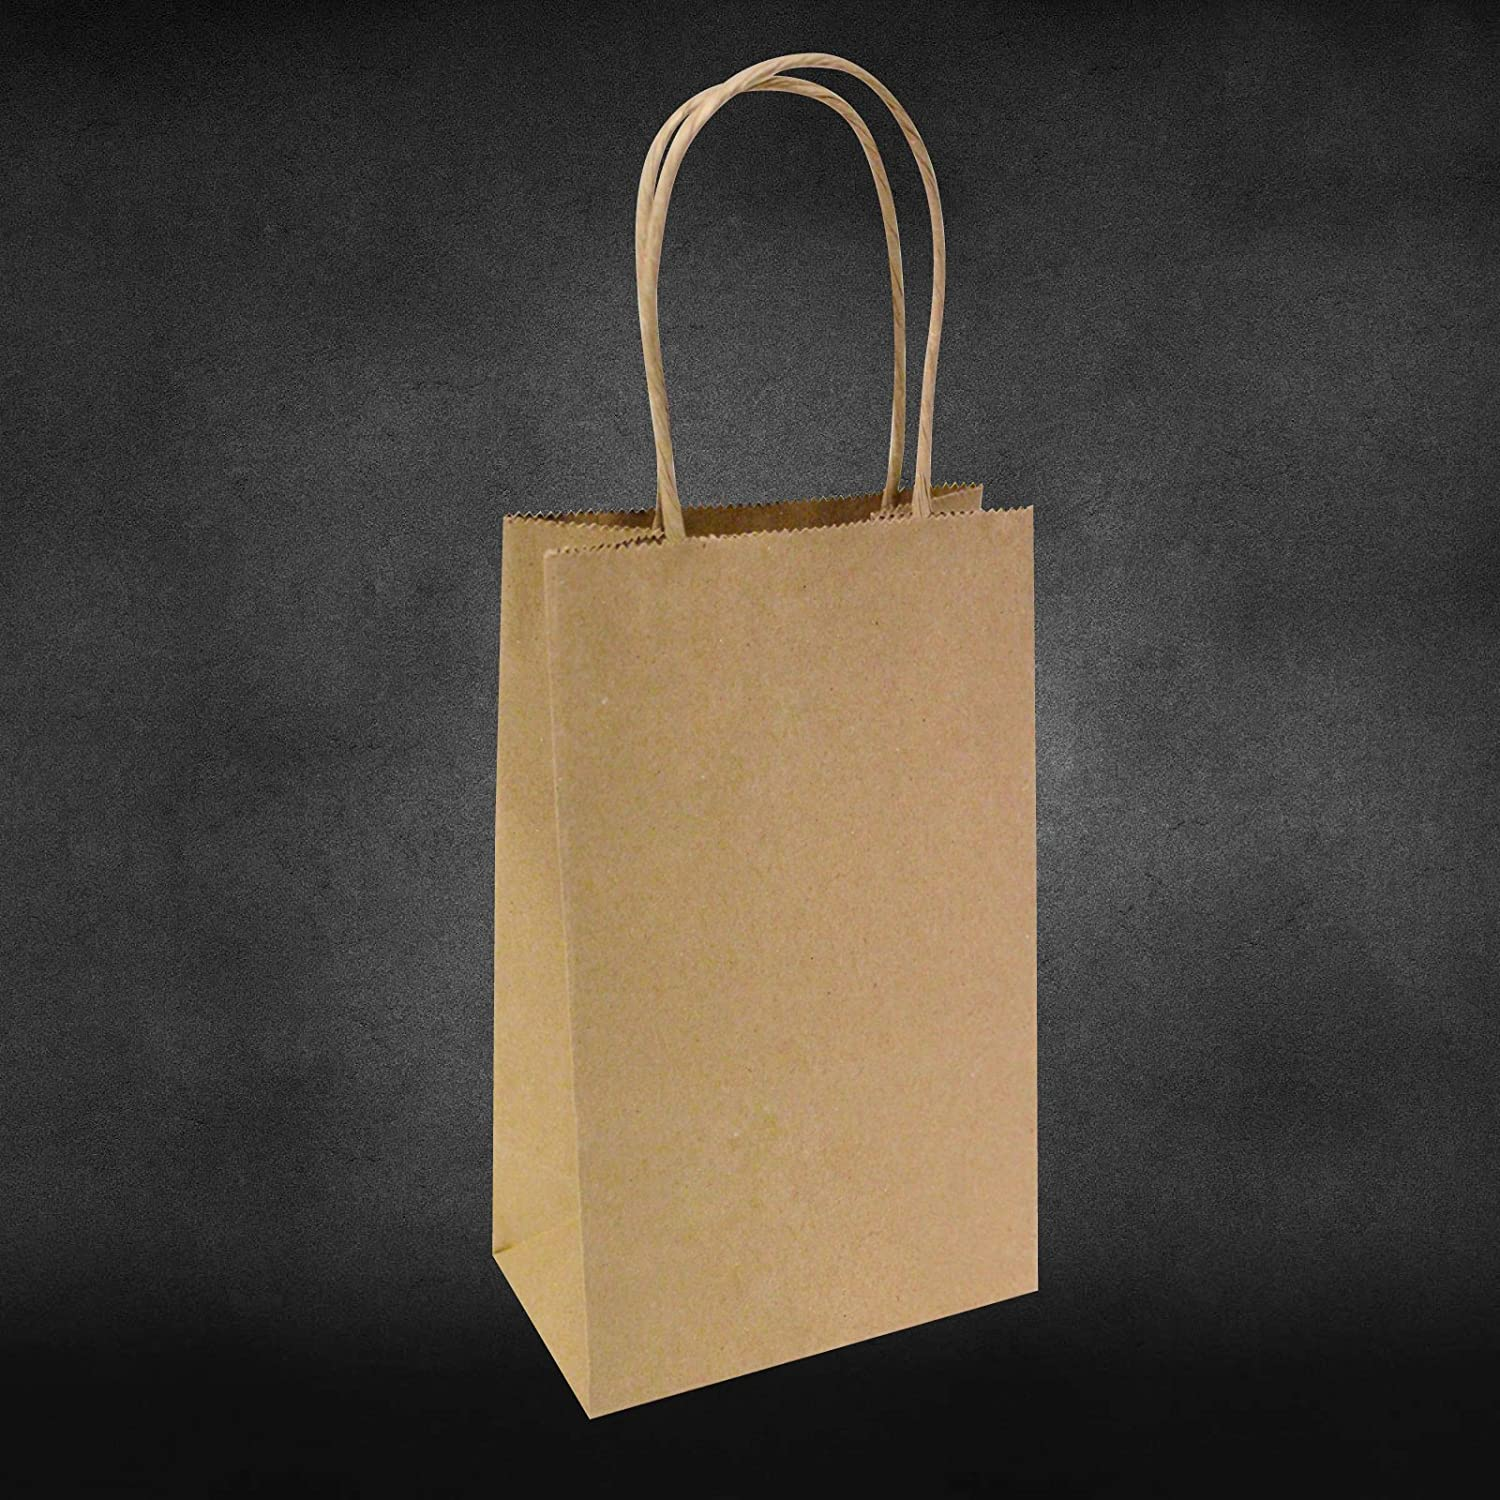 5.25x3.25x8 - 100 Pcs - Brown Kraft Paper Bags, Shopping, Mechandise, Party, Gift Bags by BagSource Bag Source PK1N100